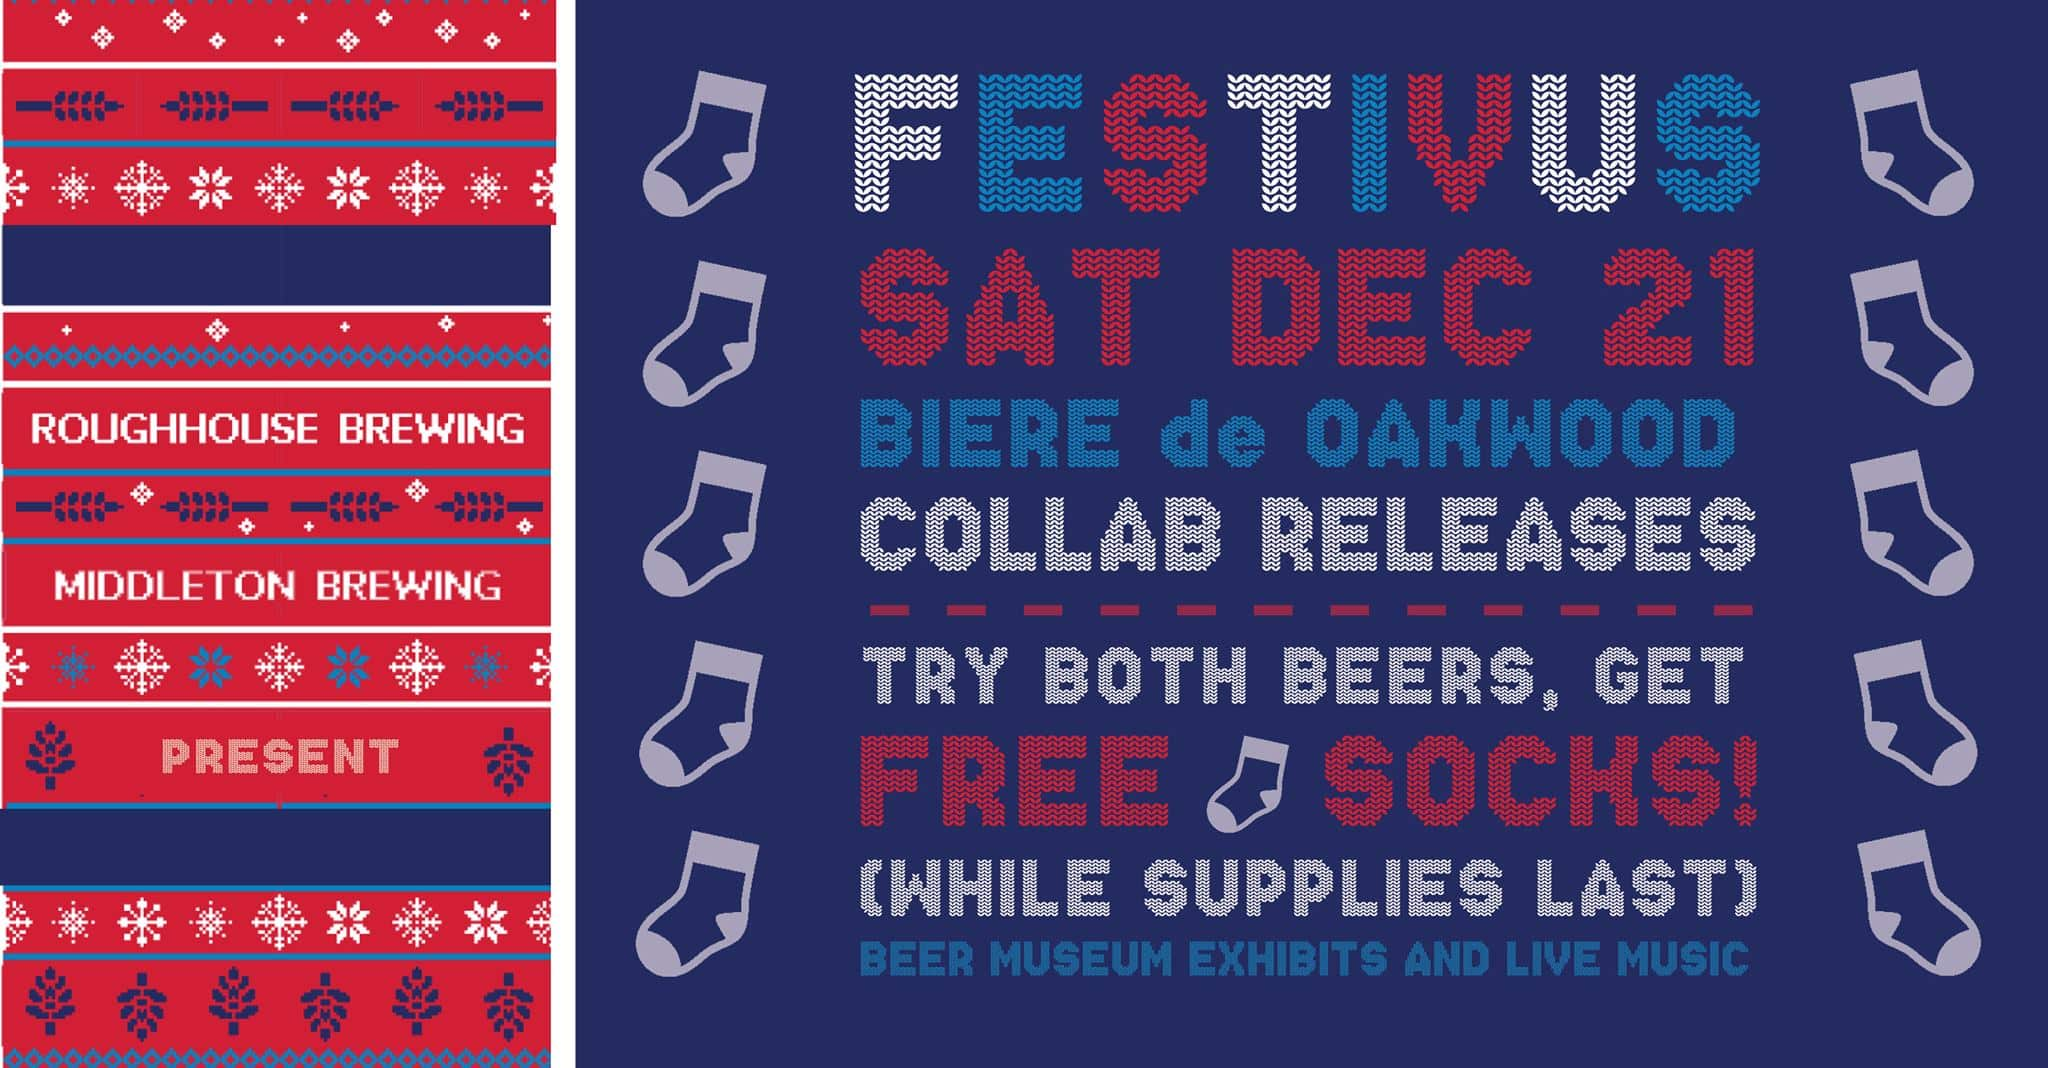 Austin Craft Beer Events Dec. 16th - Dec. 22nd 2019